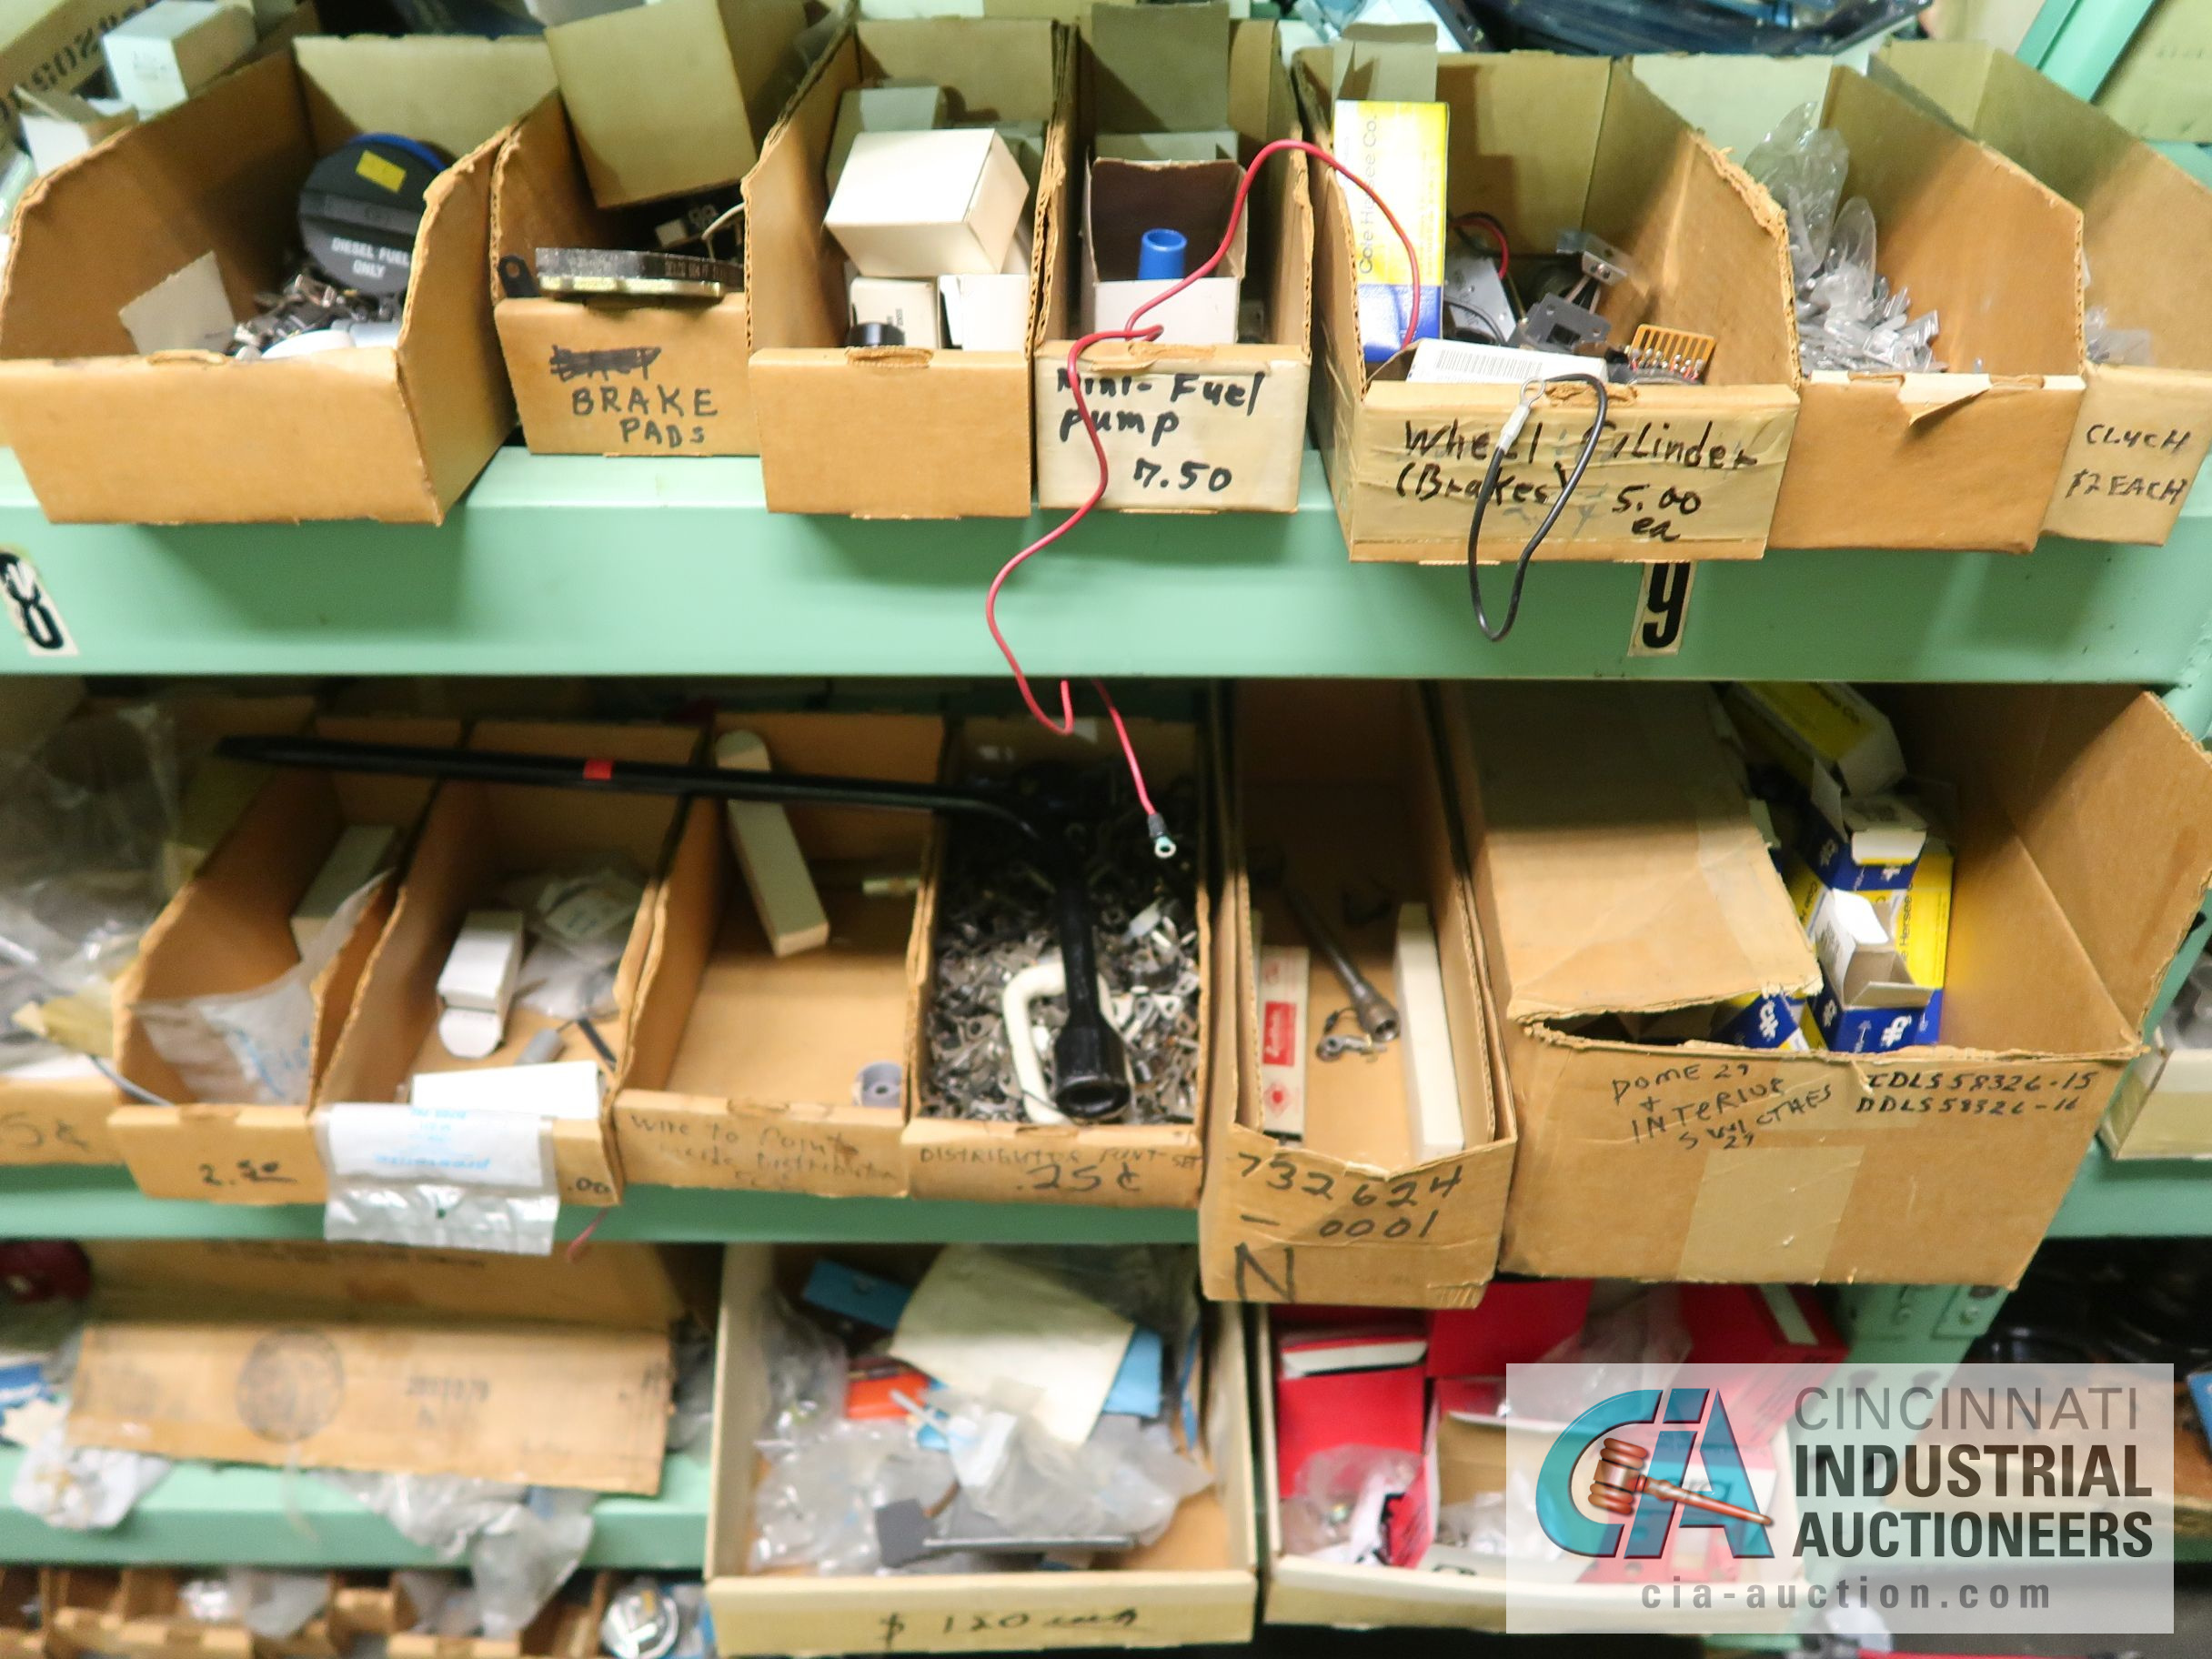 CONTENTS OF (5) RACKS INCLUDING MISCELLANEOUS AUTOMOTIVE PARTS, LIGHTS, FILTERS, ENGINE PARTS, RIMS, - Image 8 of 29